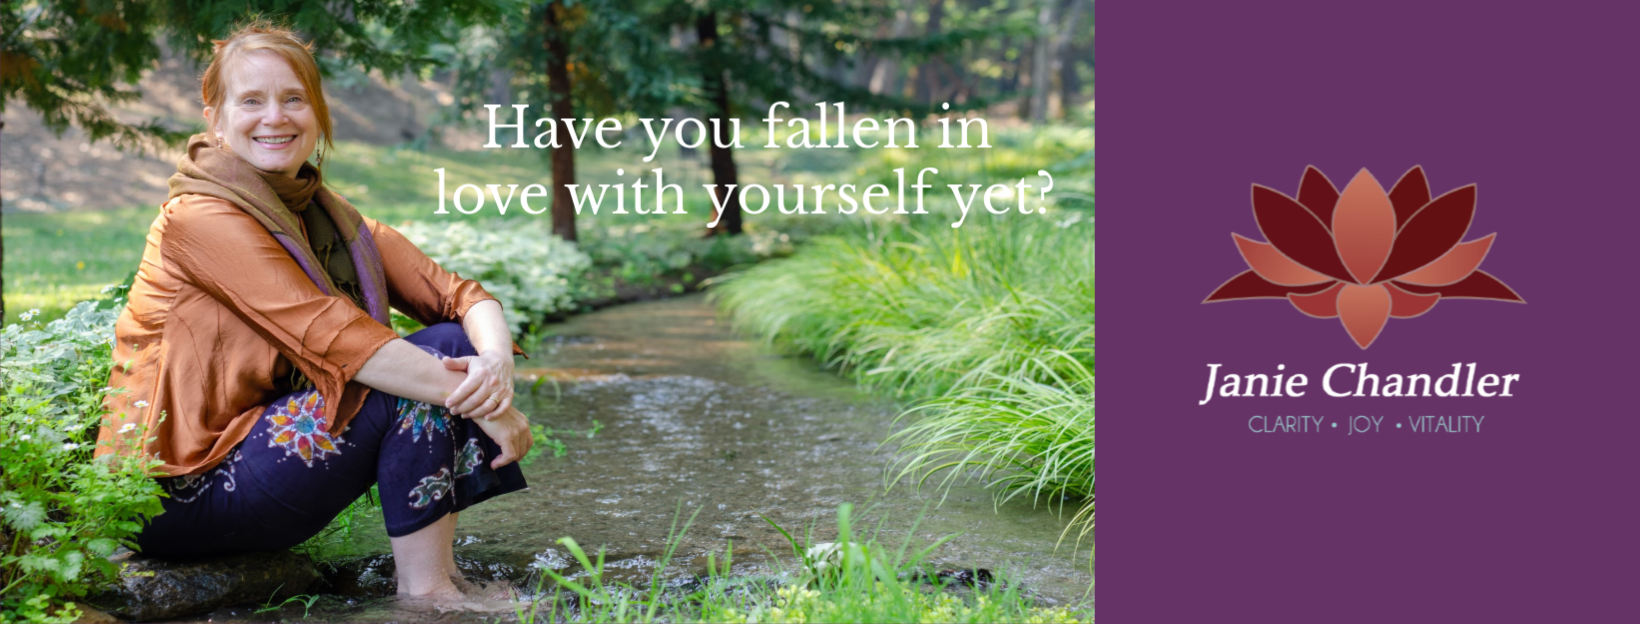 Have you fallen in love with yourself yet?